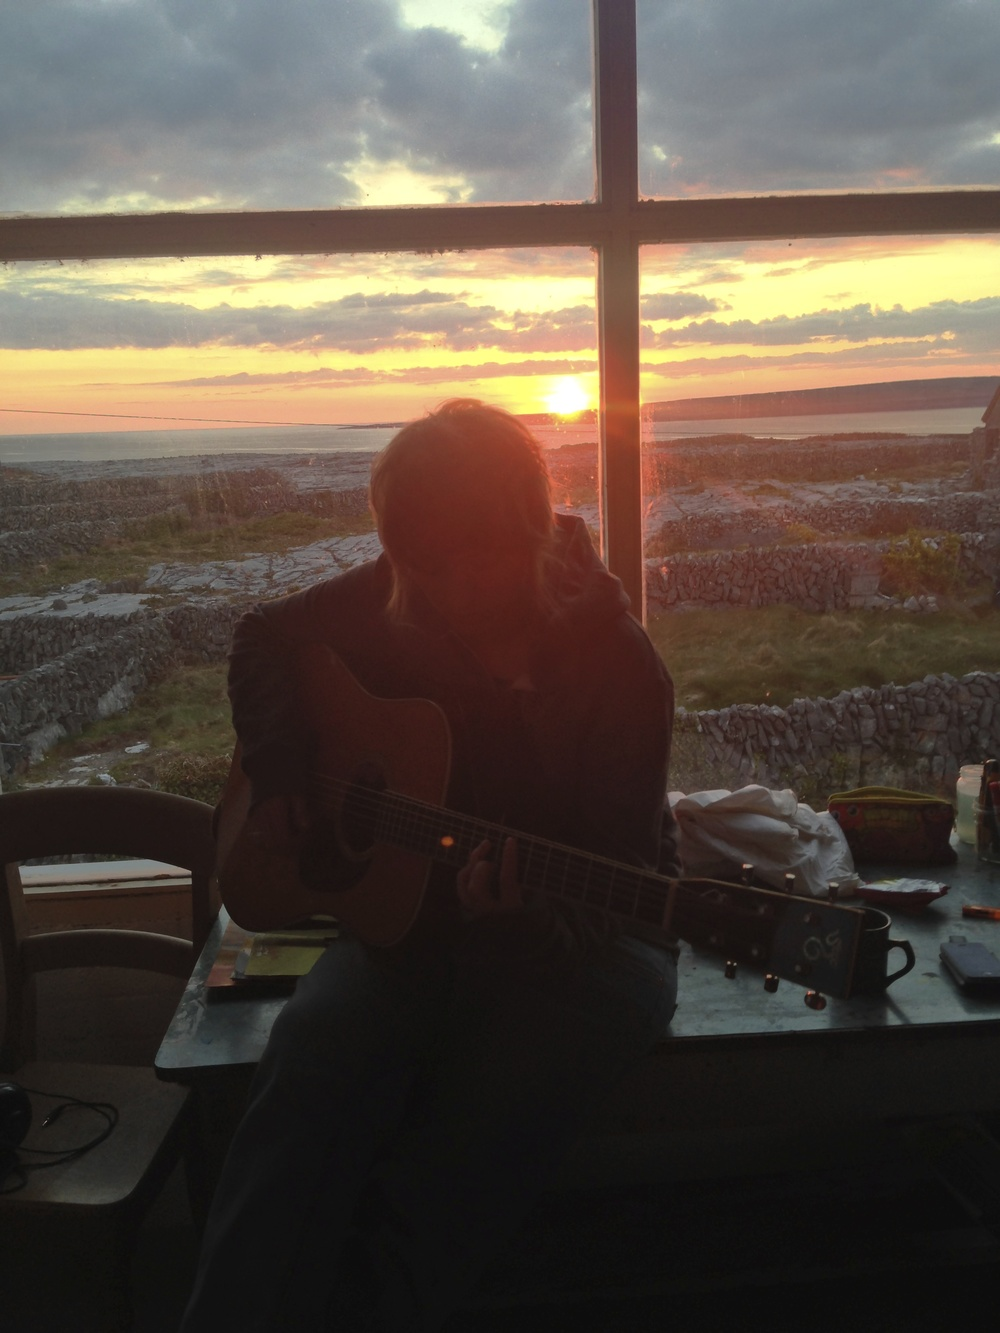 Klay playing guitar in front of the huge window with the sunset at her back.